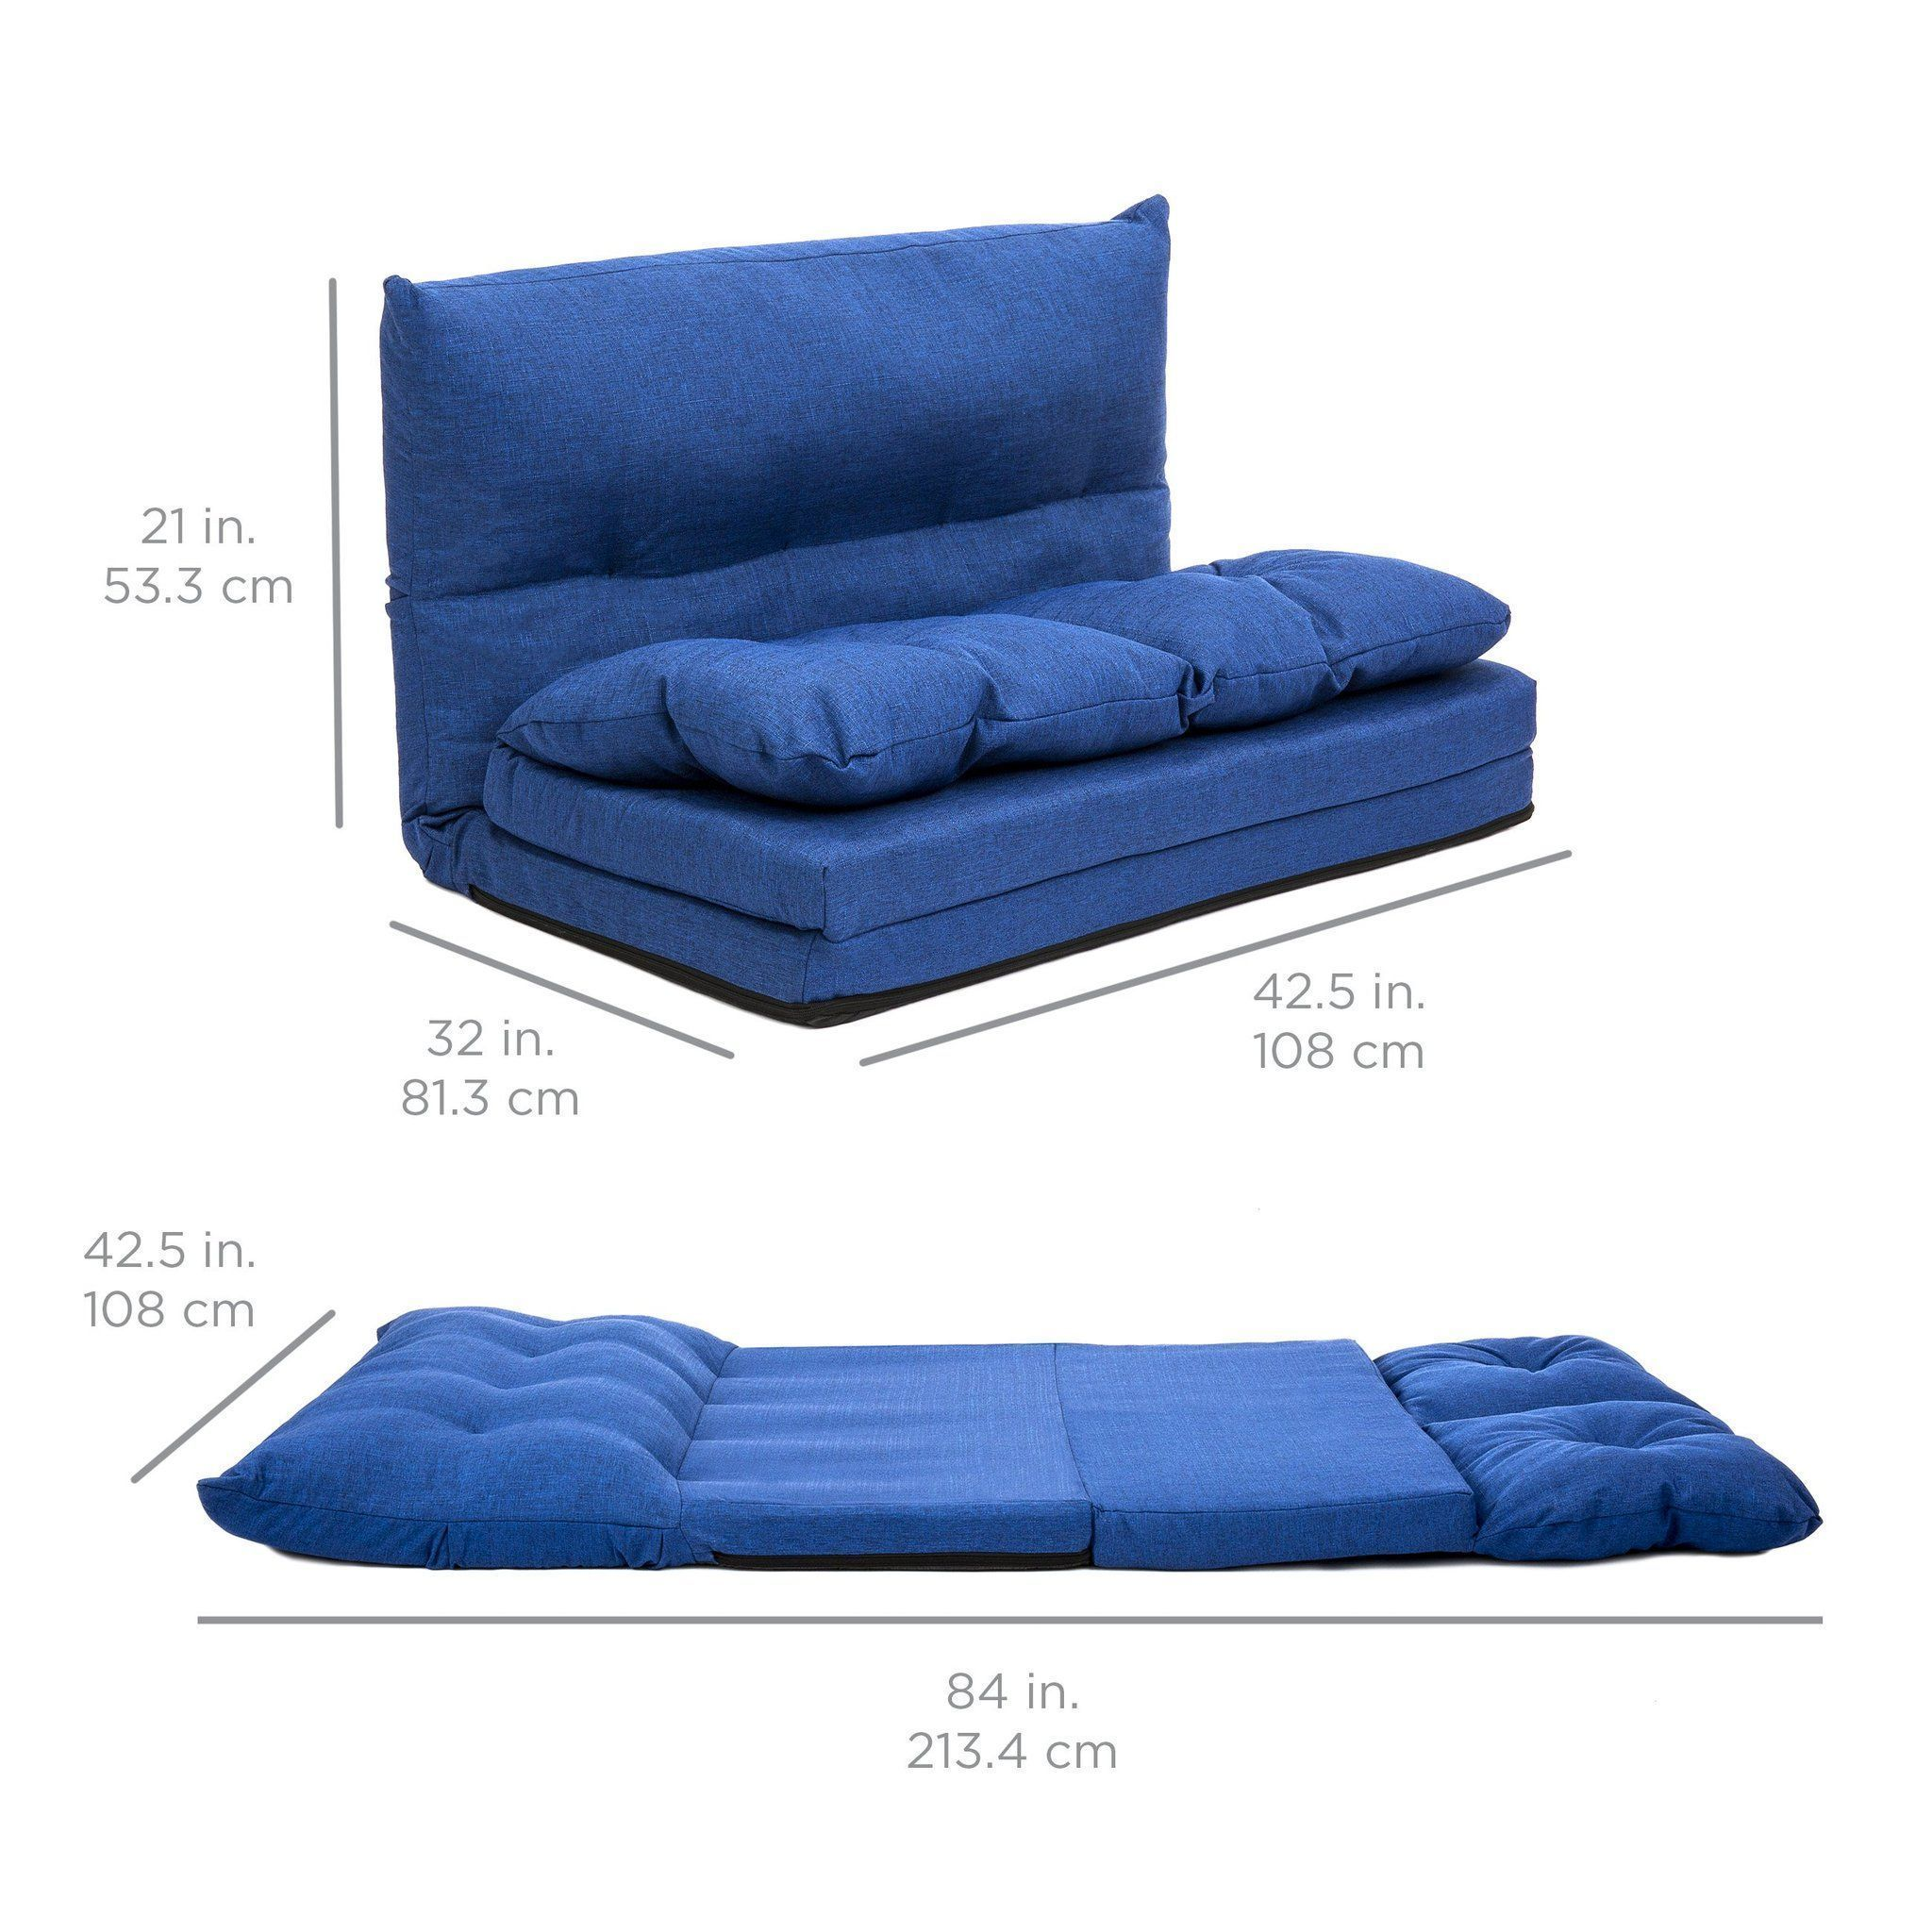 Foldable leather floor sofa bed gaming chair w two pillows blue